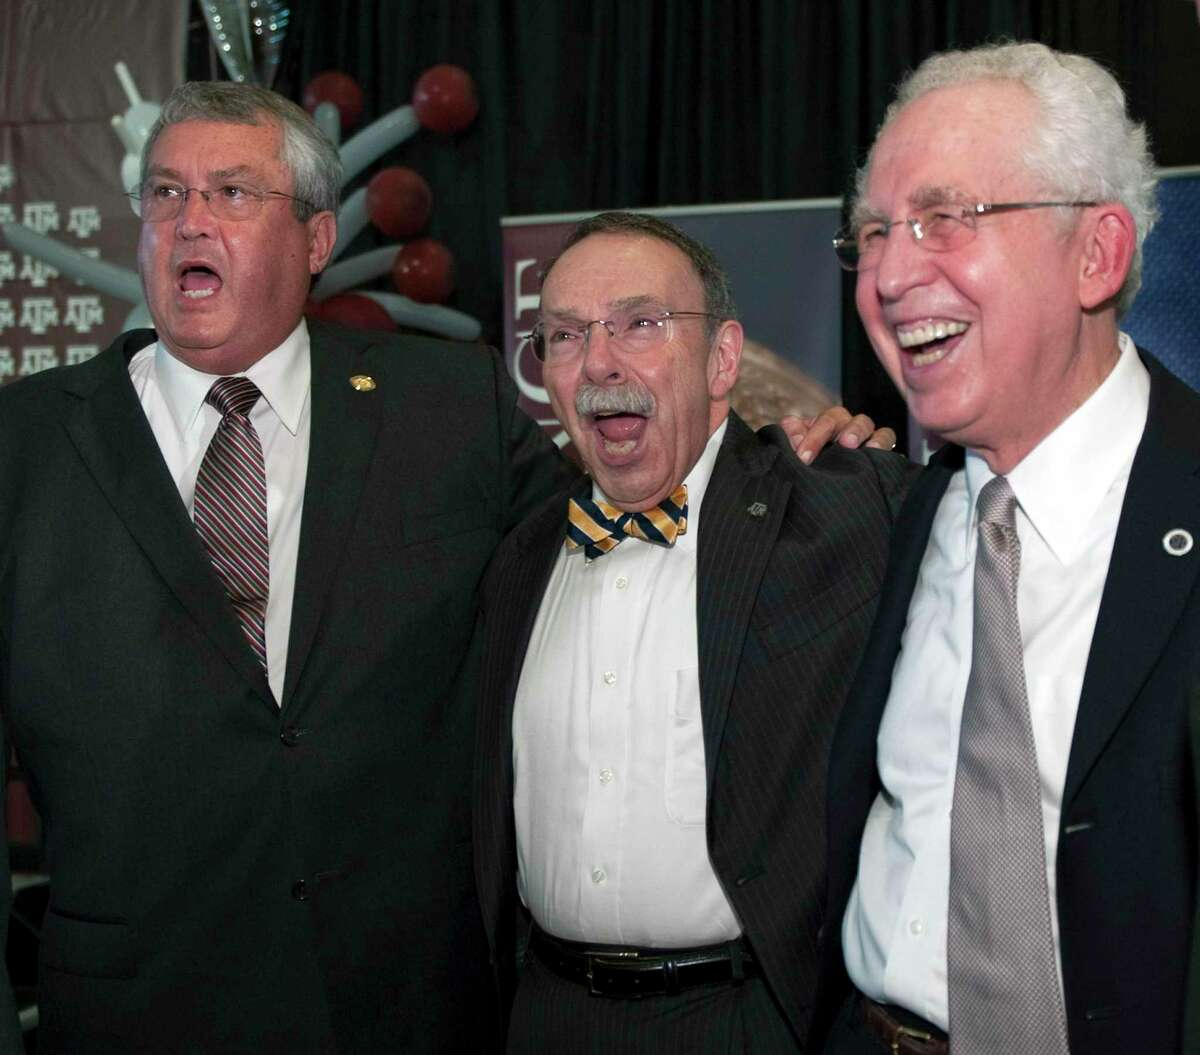 Texas A&M athletic director Bill Byrne, president R. Bowen Loftin and Southeastern Conference commissioner Mike Slive were all smiles in celebrating A&M's move to the SEC in September of 2011 but there was some tense times earlier, according to a new book.